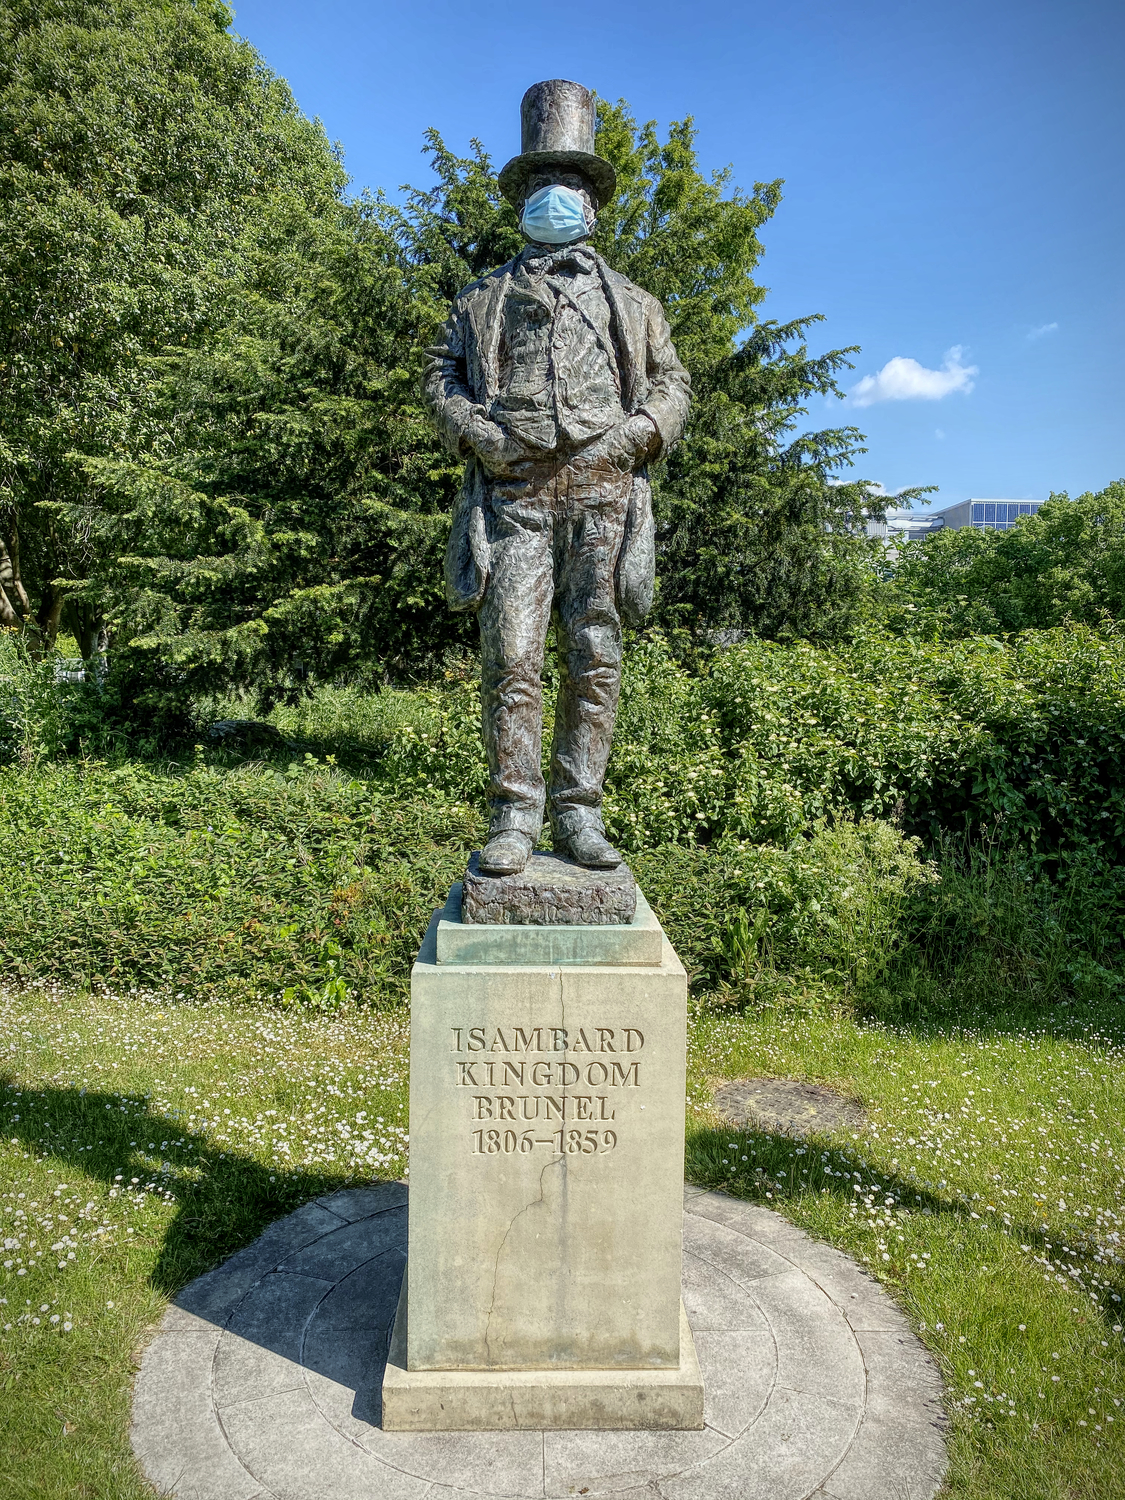 Statue of Isambard Kingdom Brunel wearing a surgical mask.